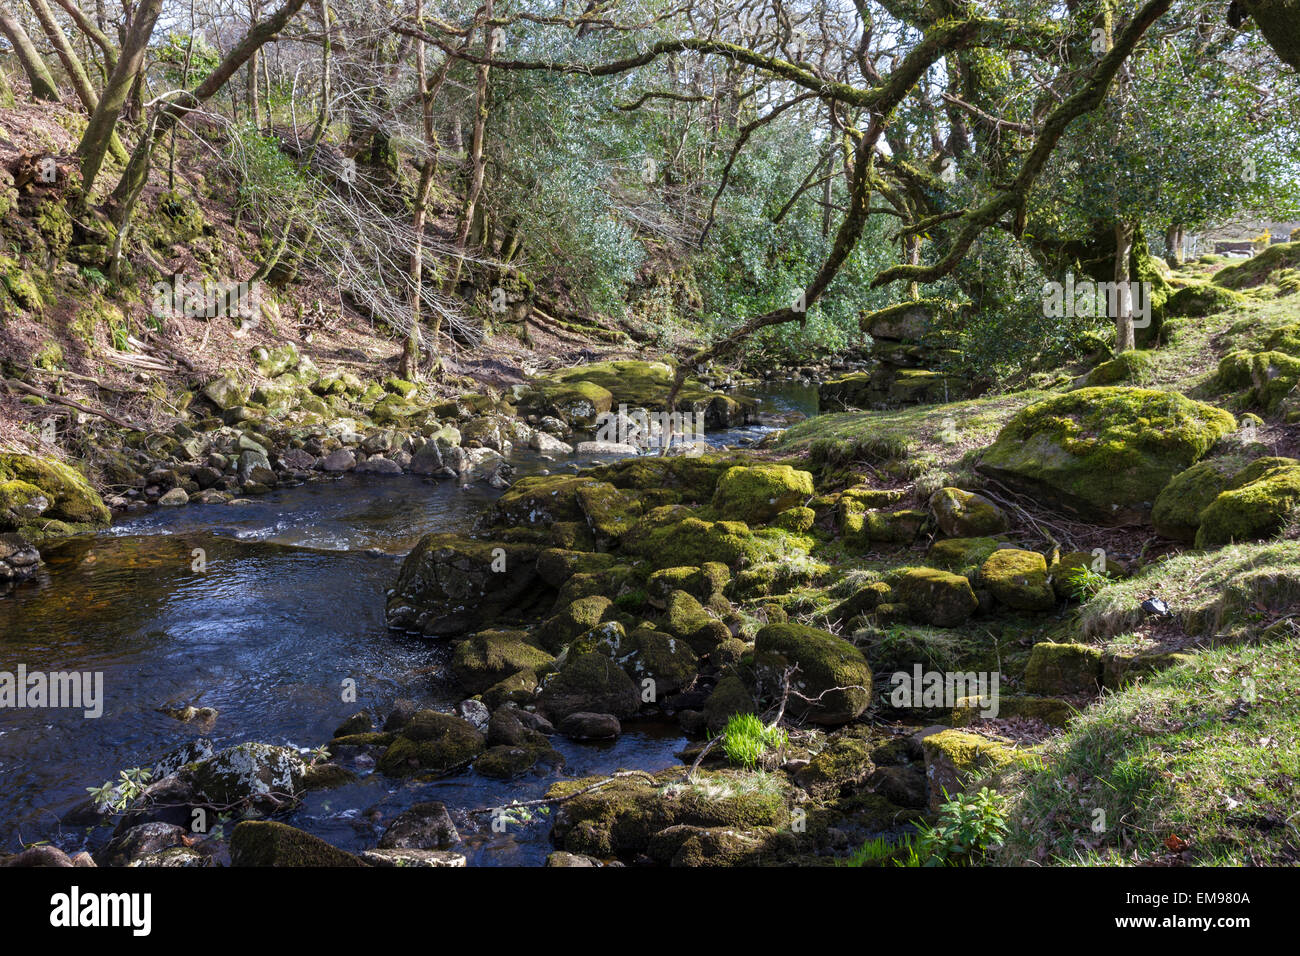 Mossy stones and branches, River Avon, South Brent, South Devon - Stock Image